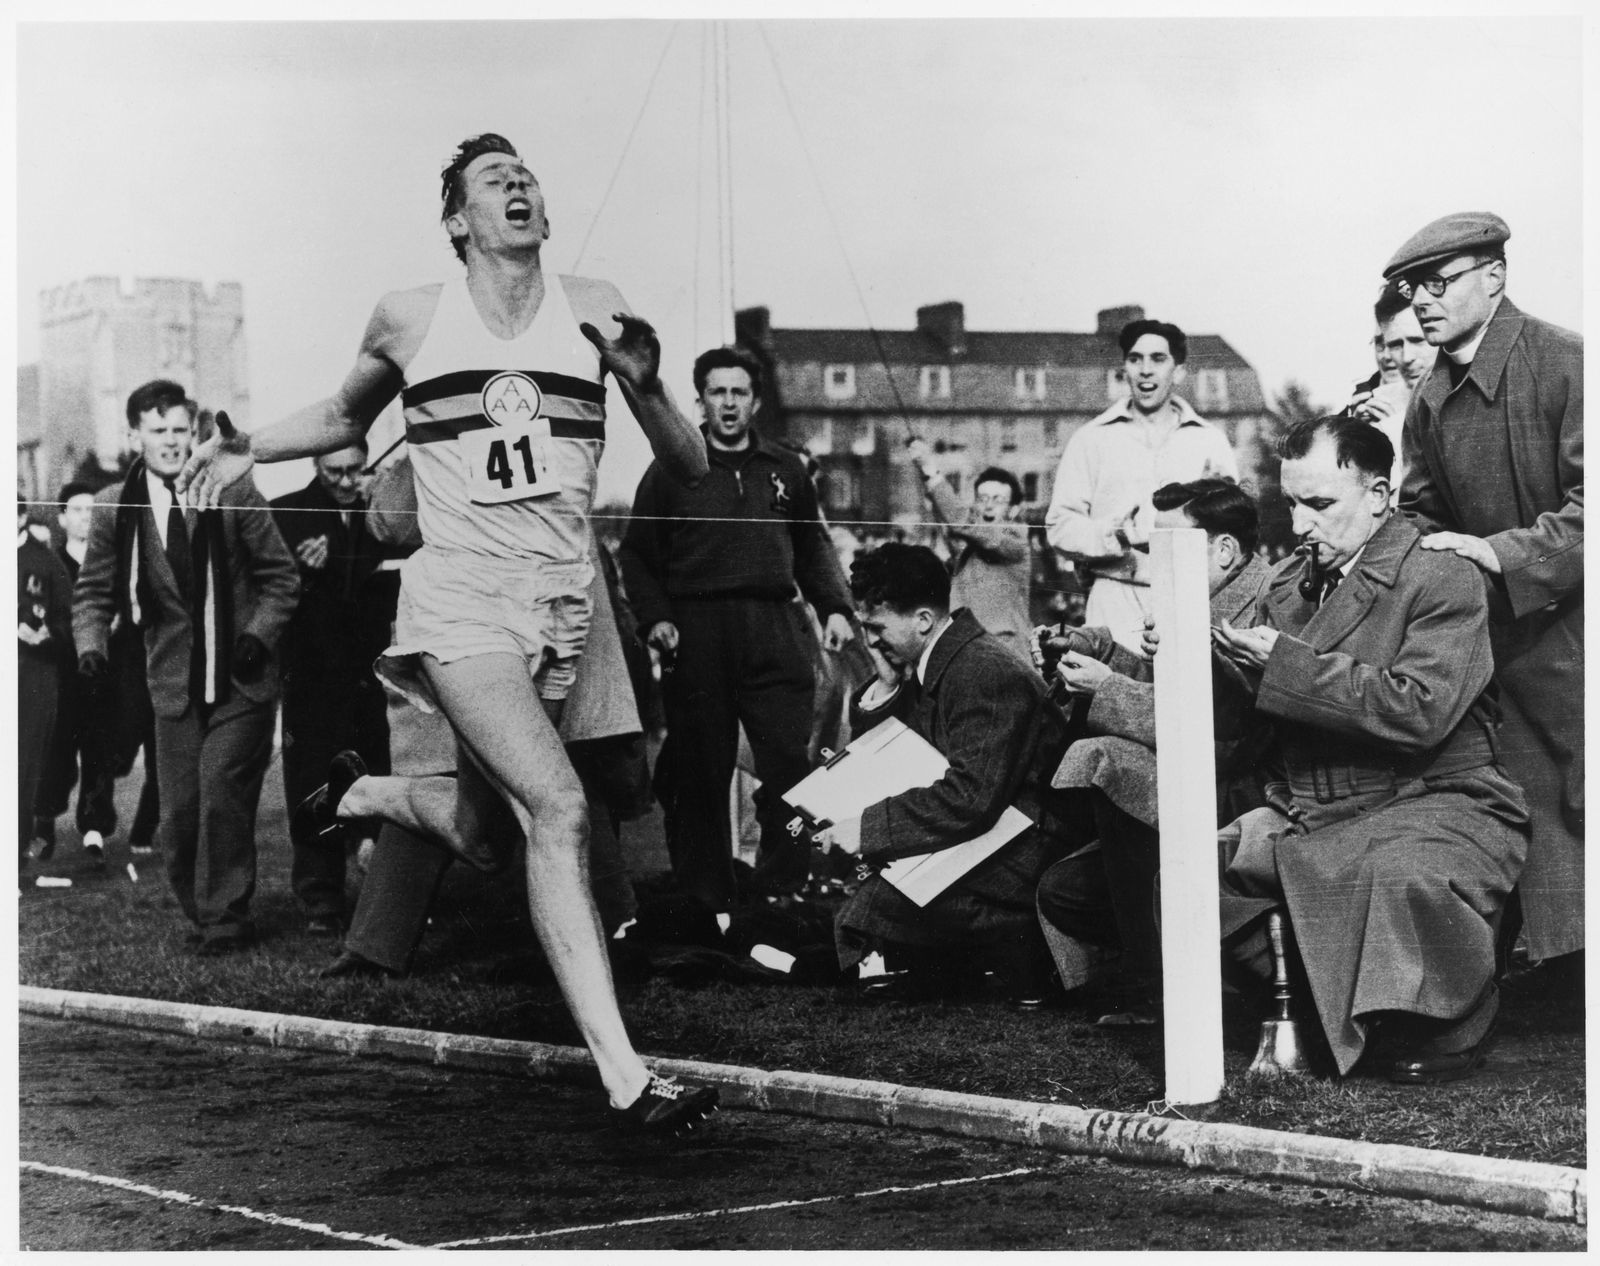 Five Things to Know About Roger Bannister, the First Person